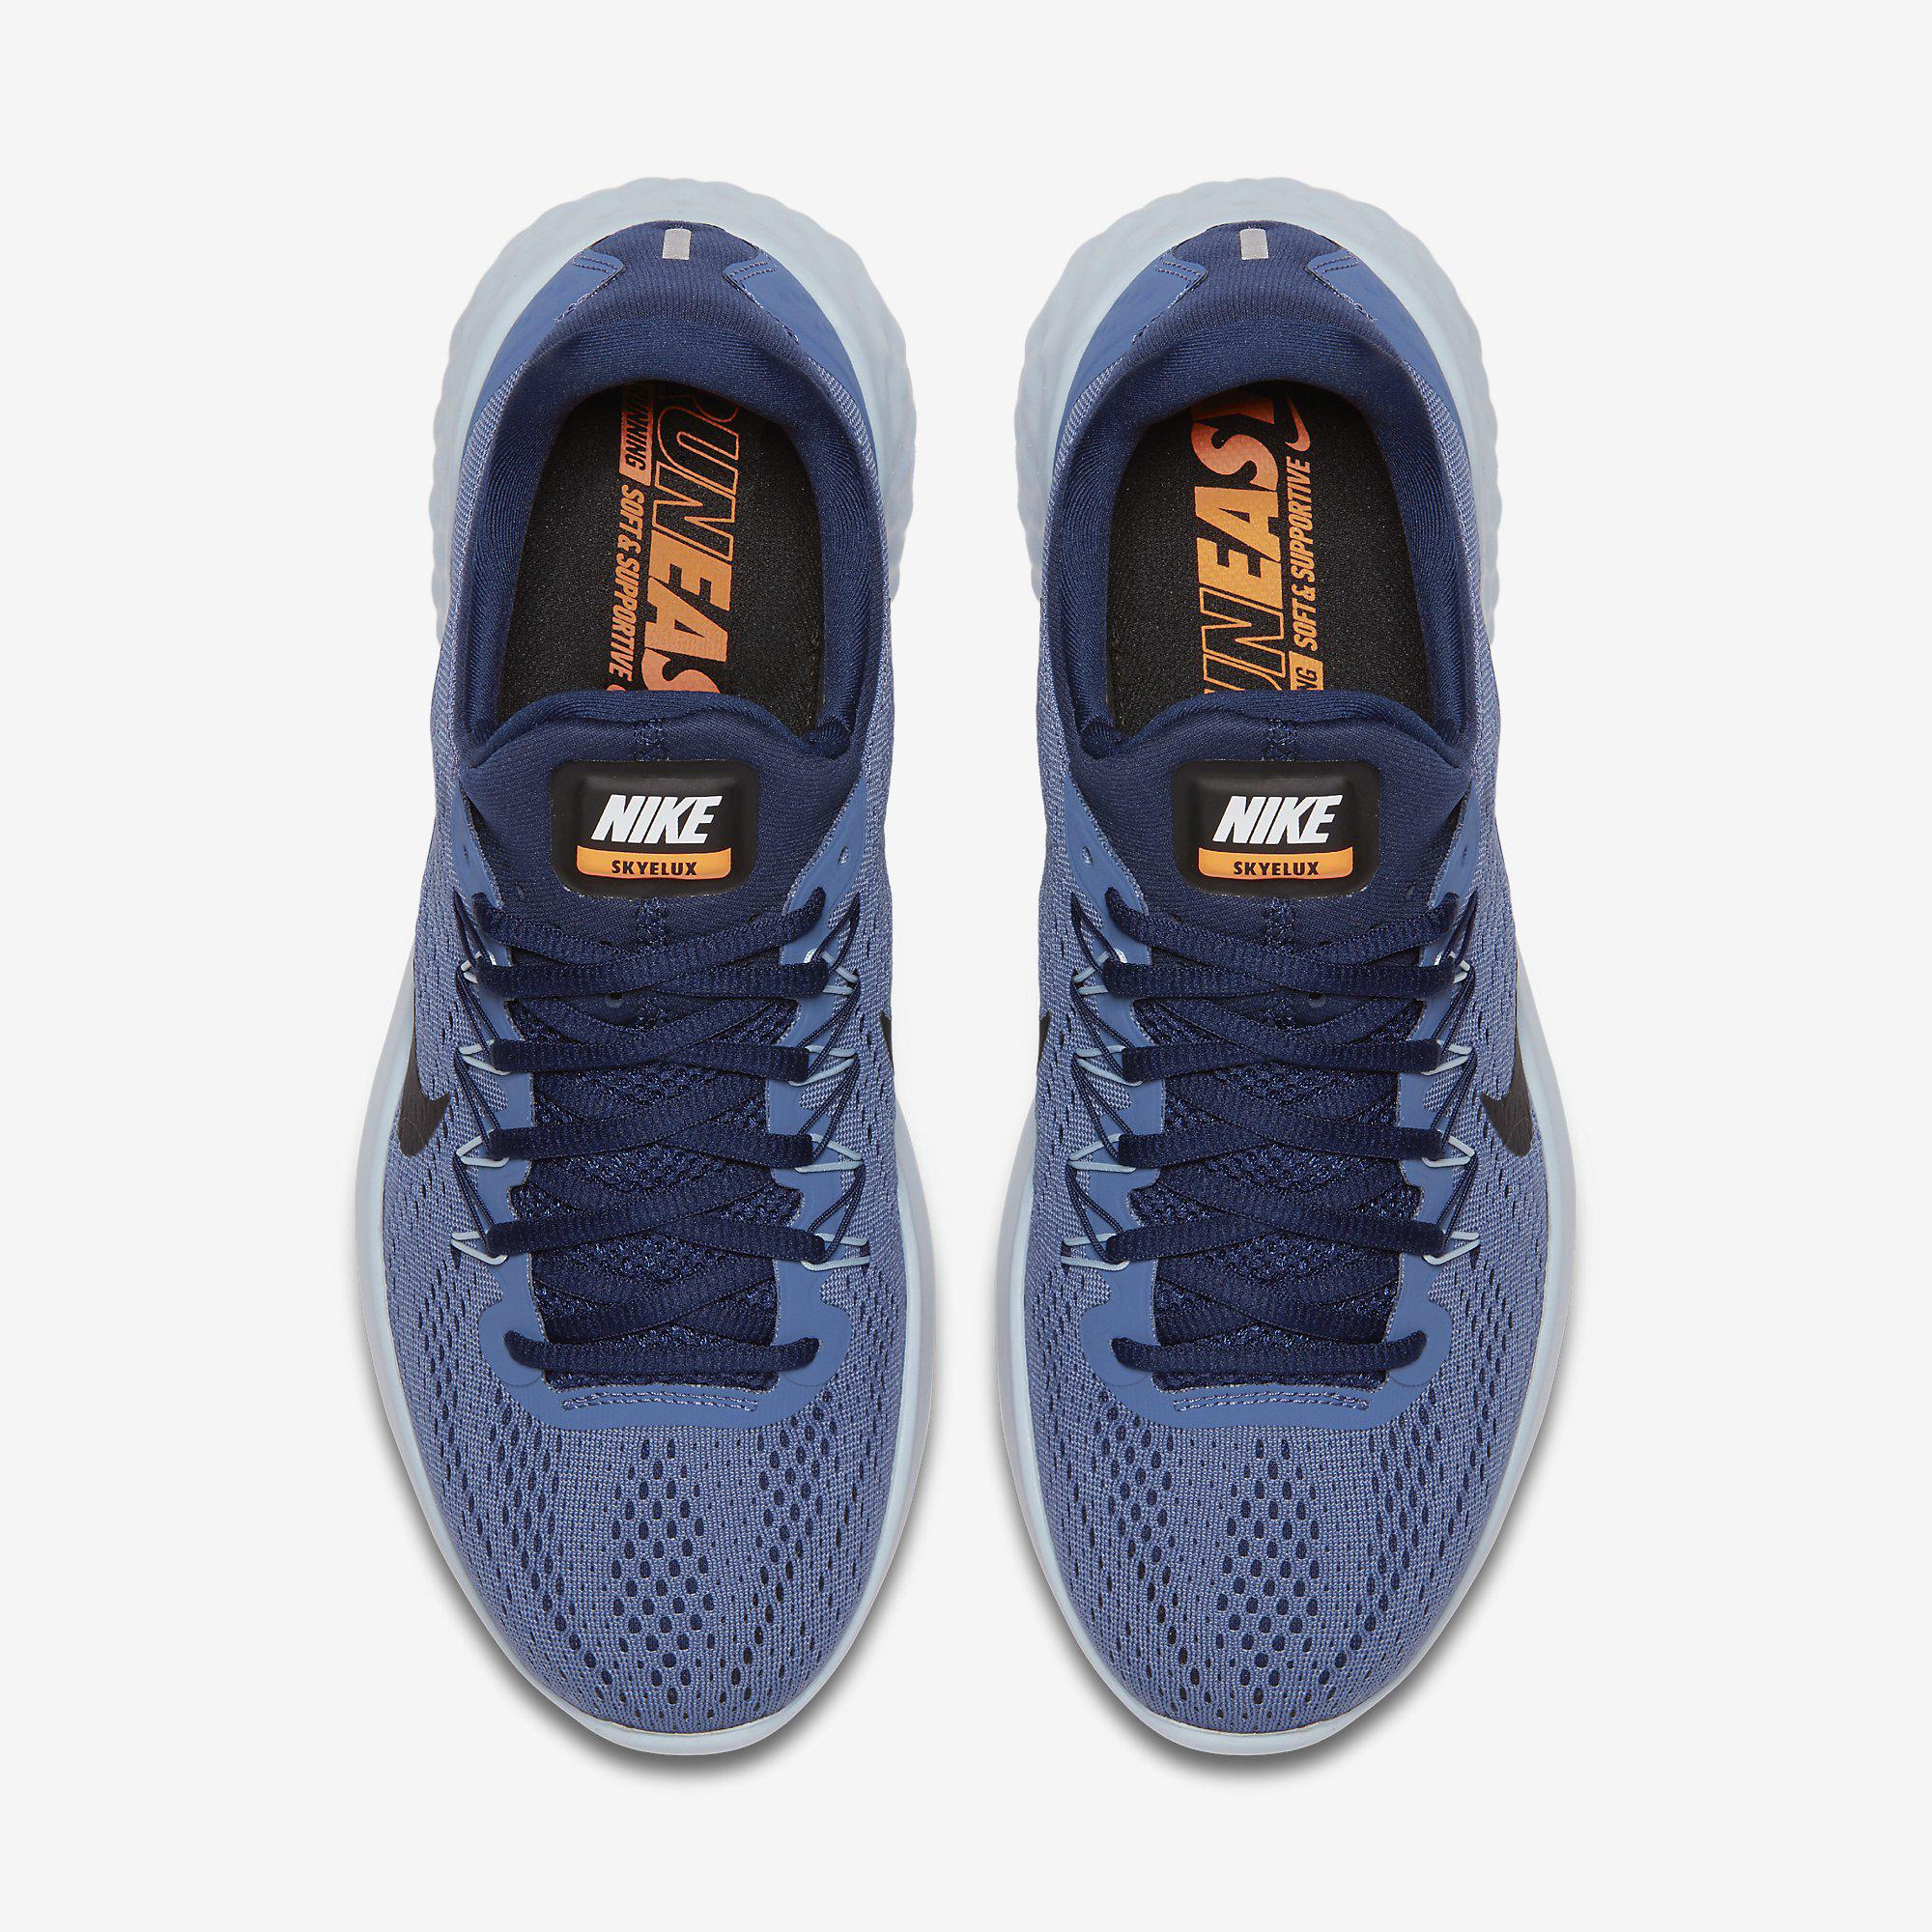 9dc9471aa922 Nike Mens Lunar Skyelux Running Shoes - Blue Moon - Tennisnuts.com